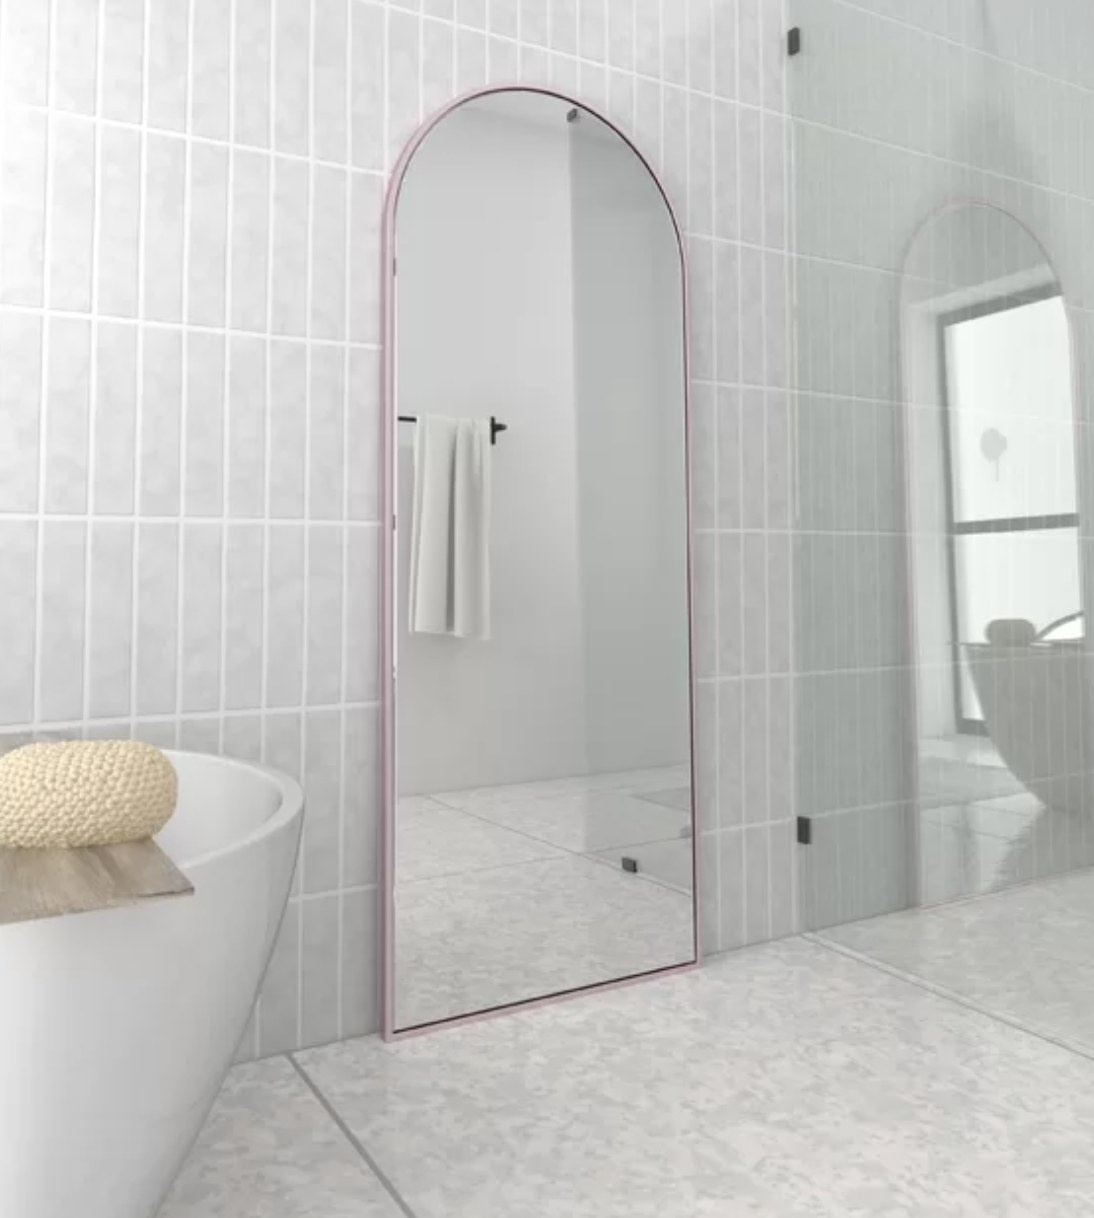 A floor-length mirror with pink trim